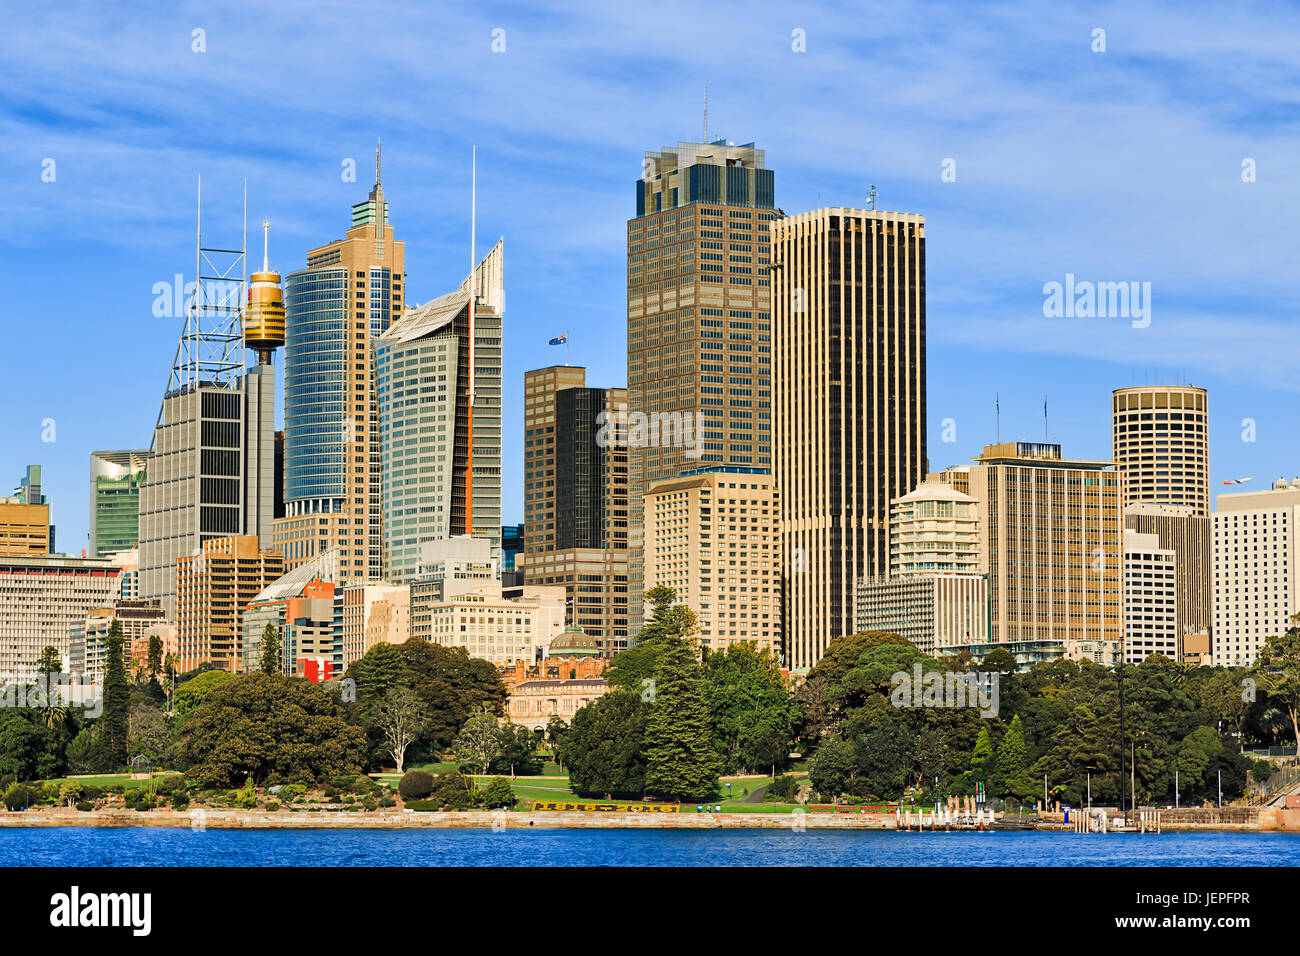 Sydney city CBD high-rise towers over Royal botanic gardens on a bright sunny day. - Stock Image